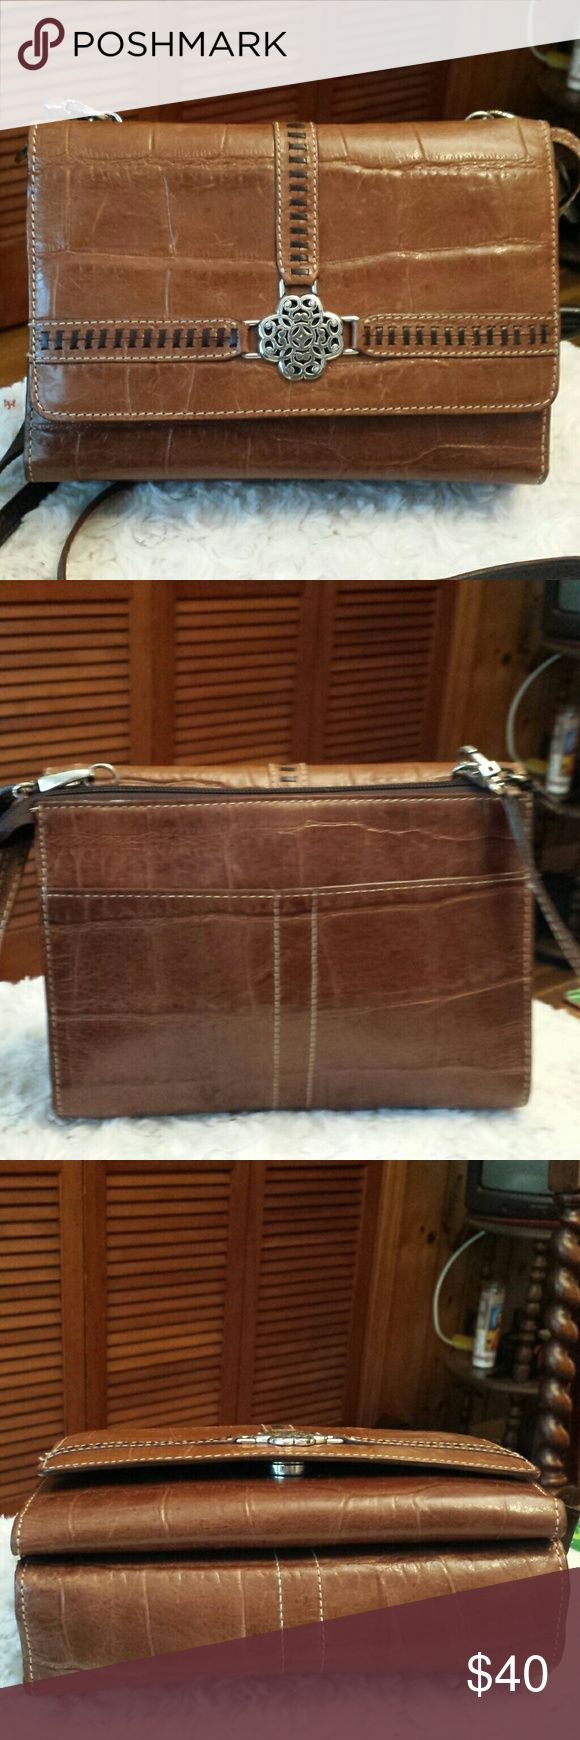 Brighton Brown leather Organizer Crossbody Bag Brighton Brown leather Organizer Crossbody Bag, Zip pocket closure, Snap closure with Checkbook Cover slot, 10 Cc Slots, 4 Large slots, Zippered pocket inside, Good Condition, H6 X W8 X D3 Brighton Bags Crossbody Bags